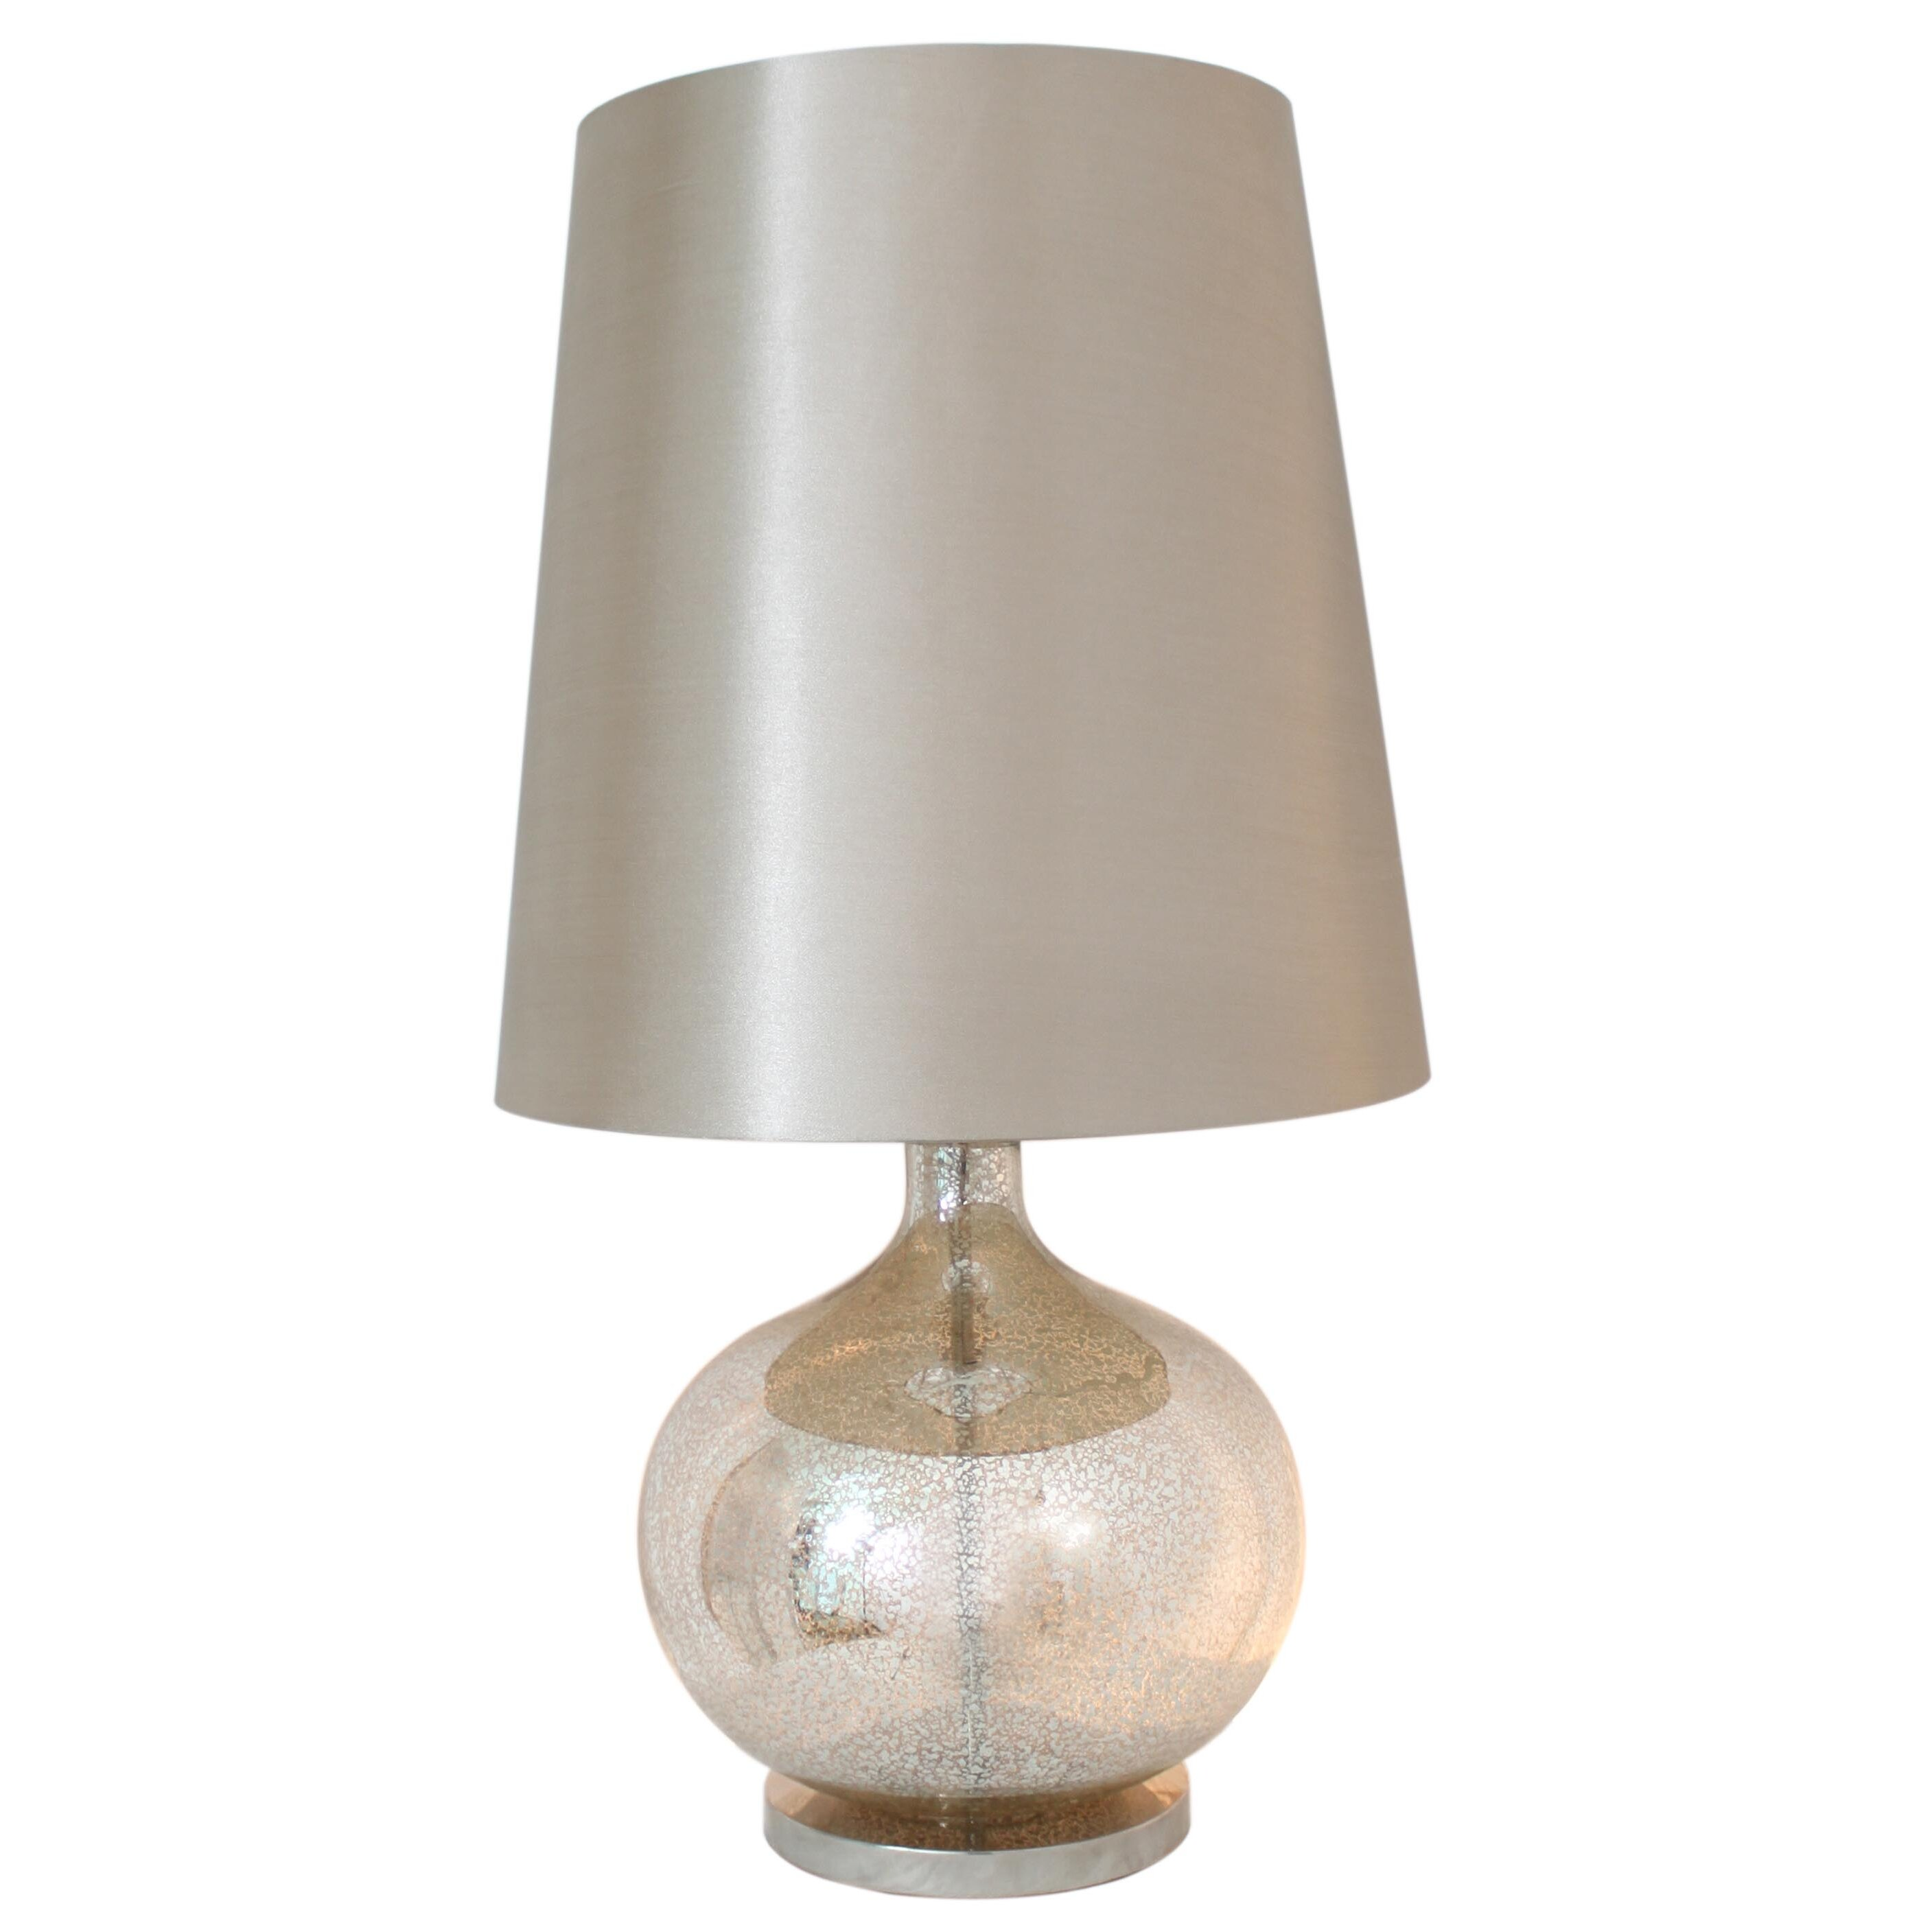 avalon lane native glass ball table lamp wayfair. Black Bedroom Furniture Sets. Home Design Ideas